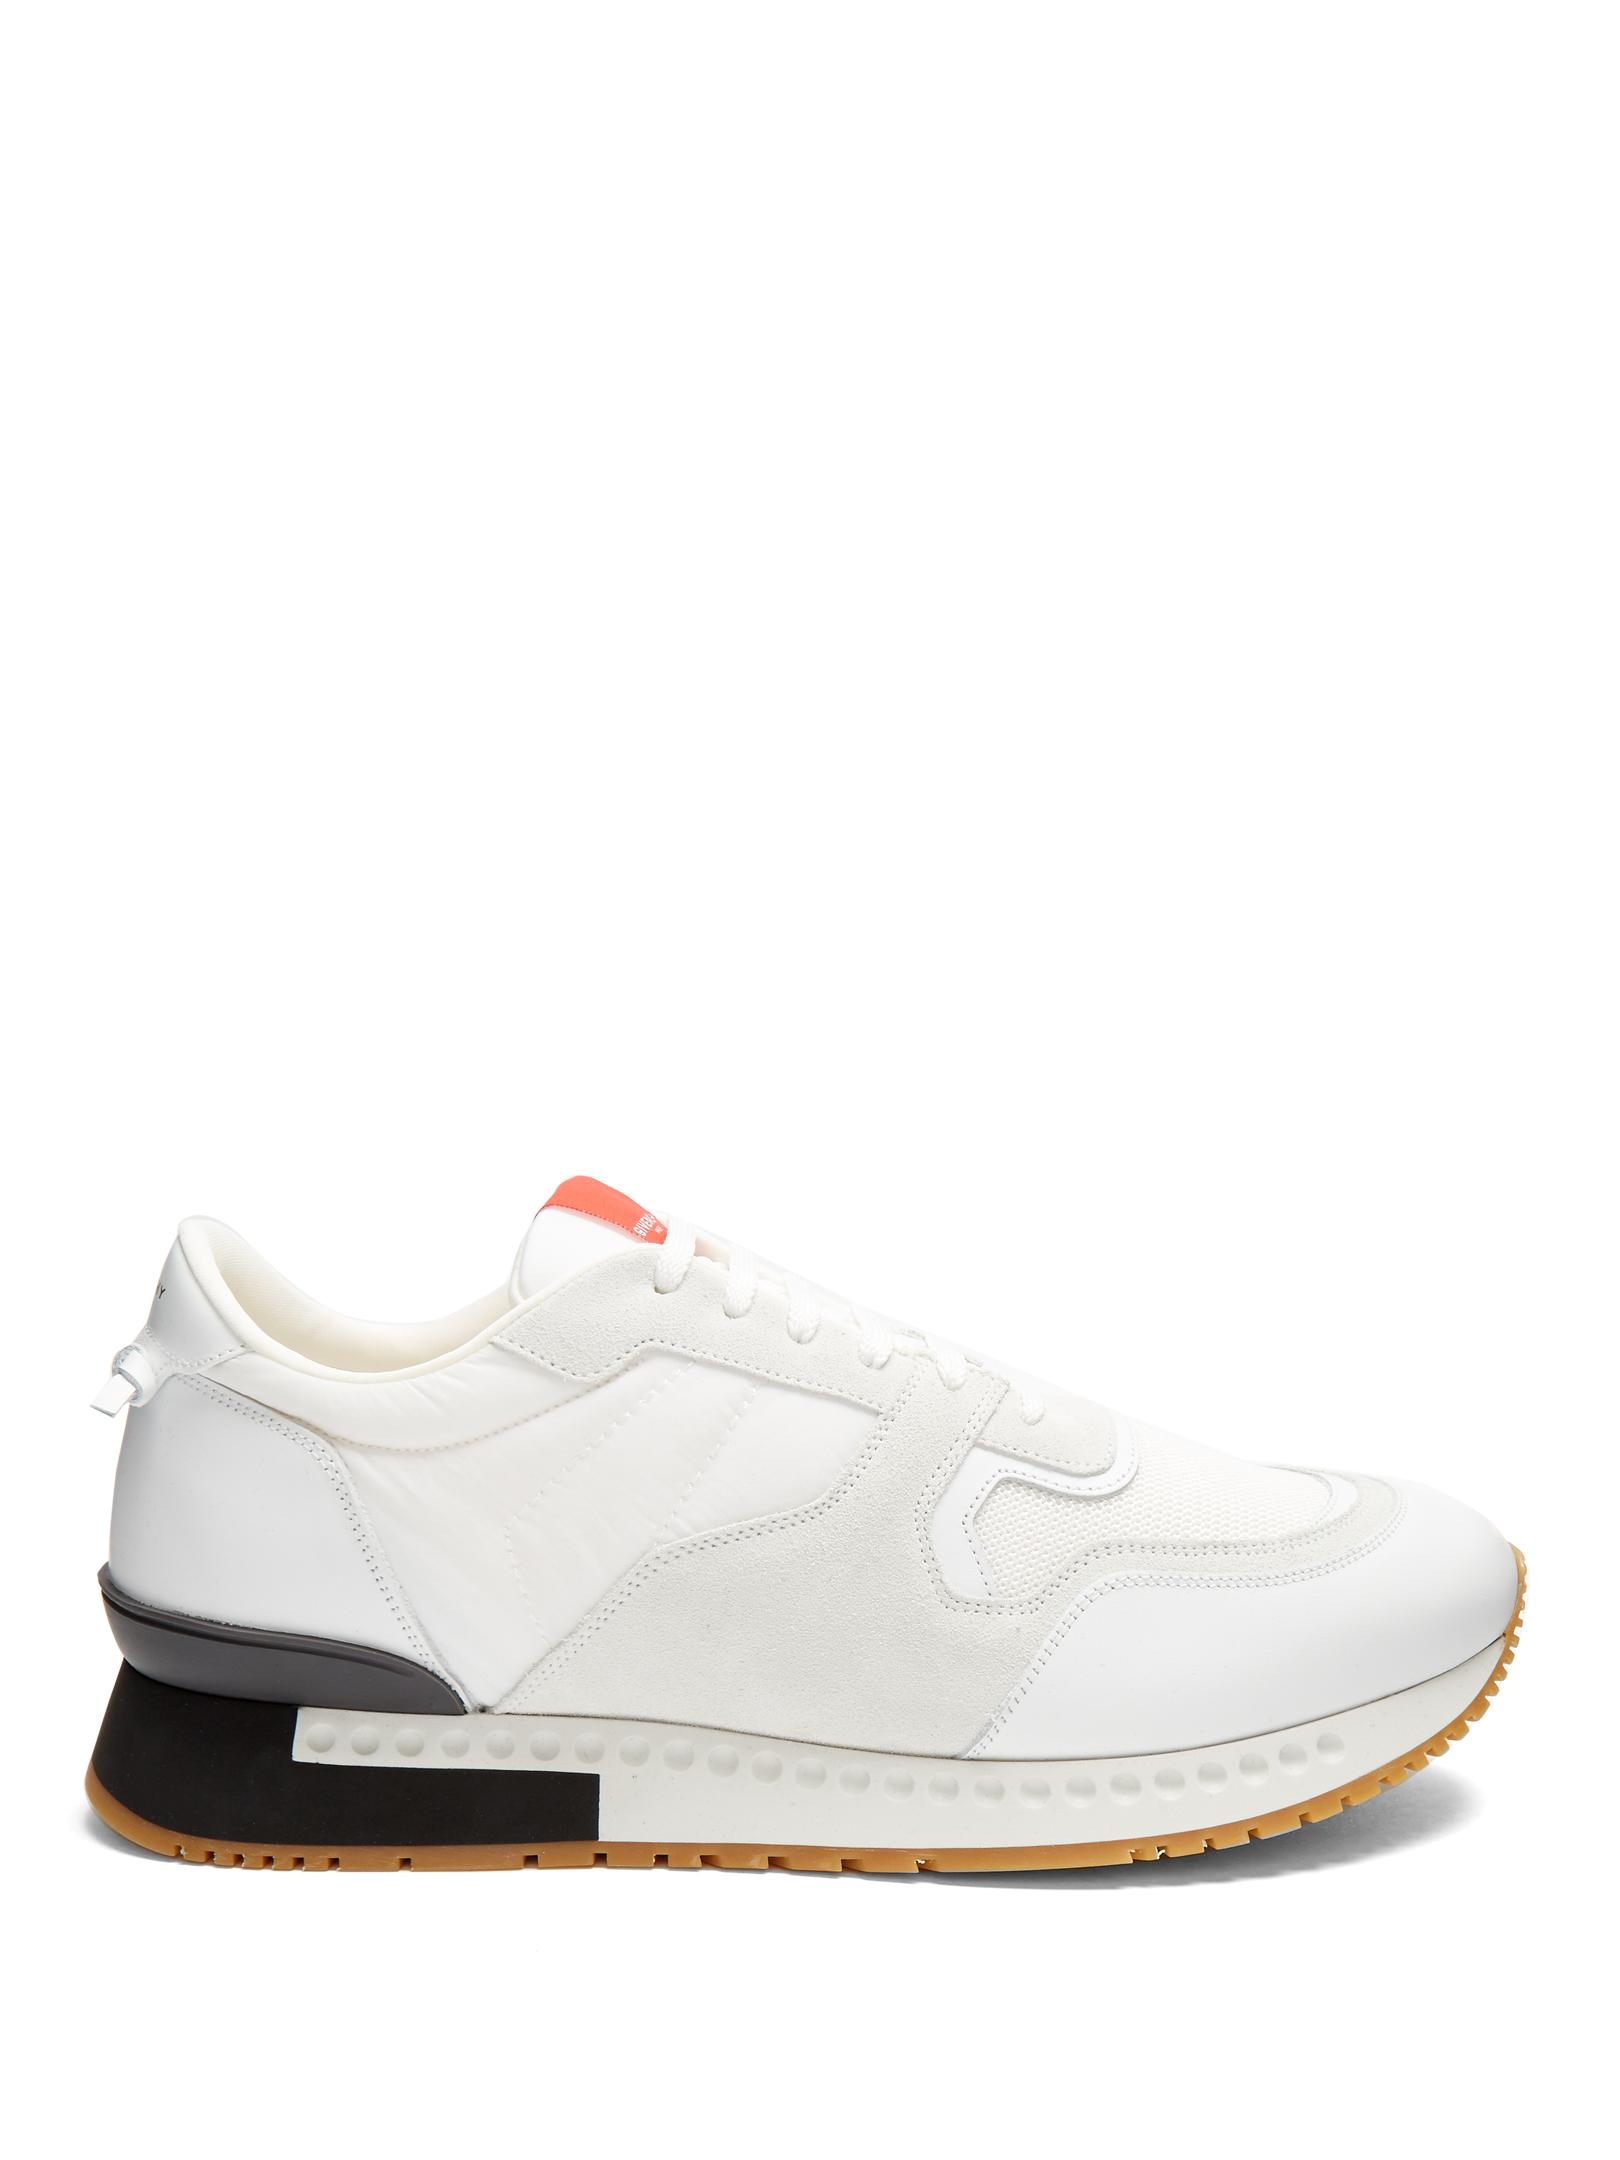 Le Coq Sportif Shoes Red Front White Back